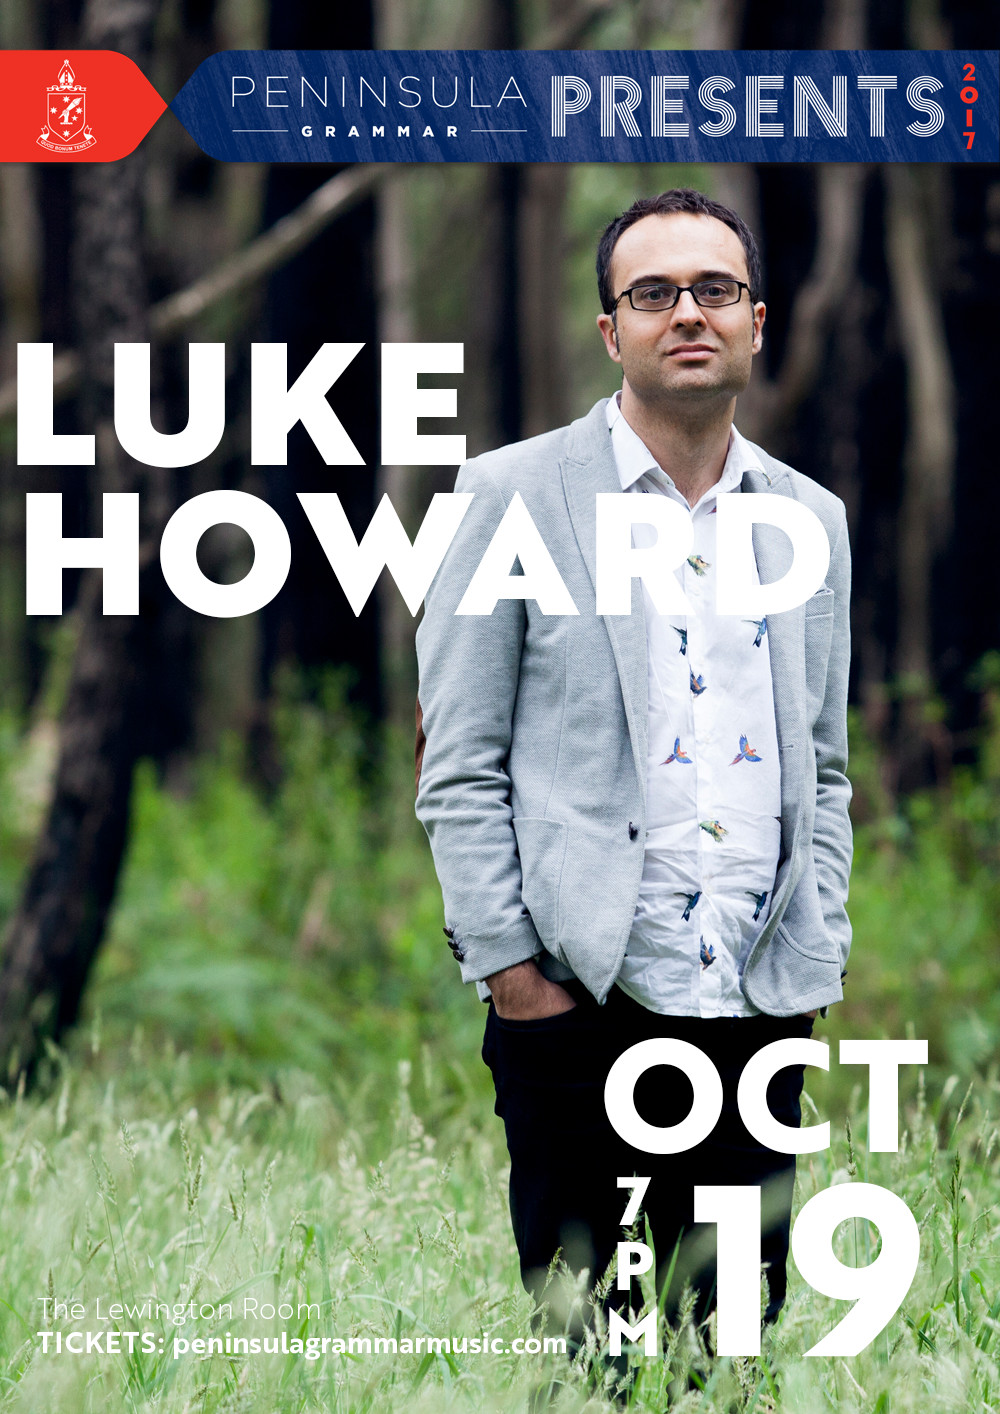 LUKE HOWARD Poster.jpg